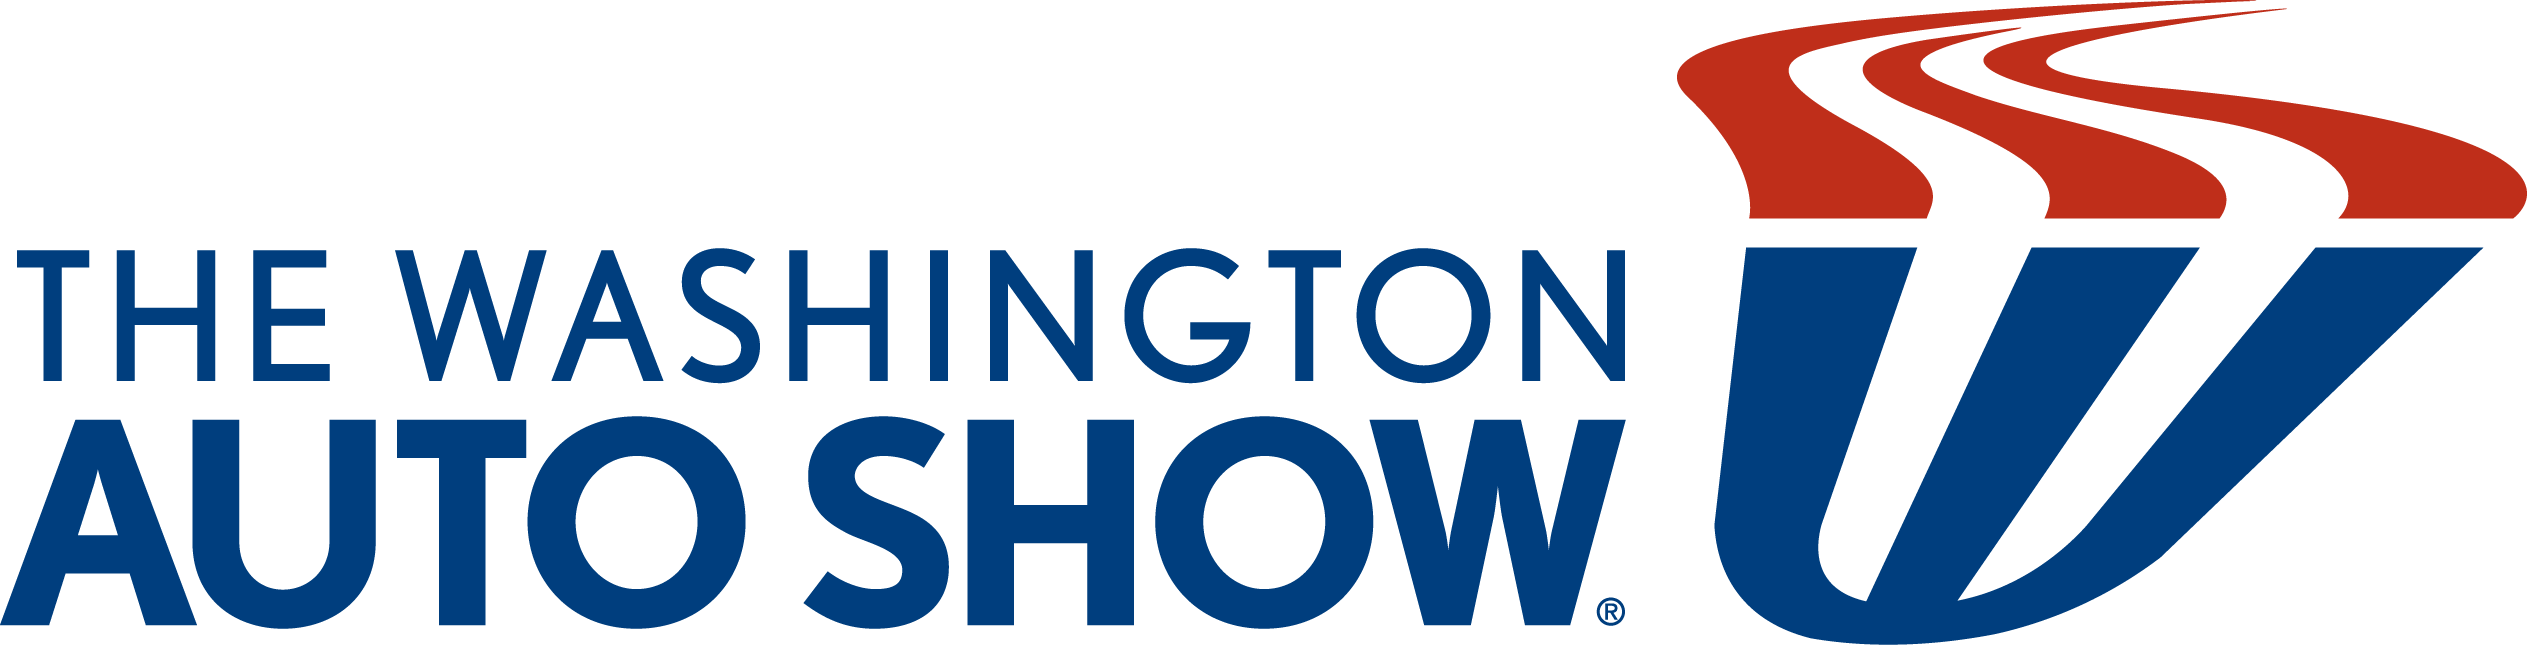 75 Years of Automotive Innovation - The Washington Auto Show - January 26 - February 4, 2018